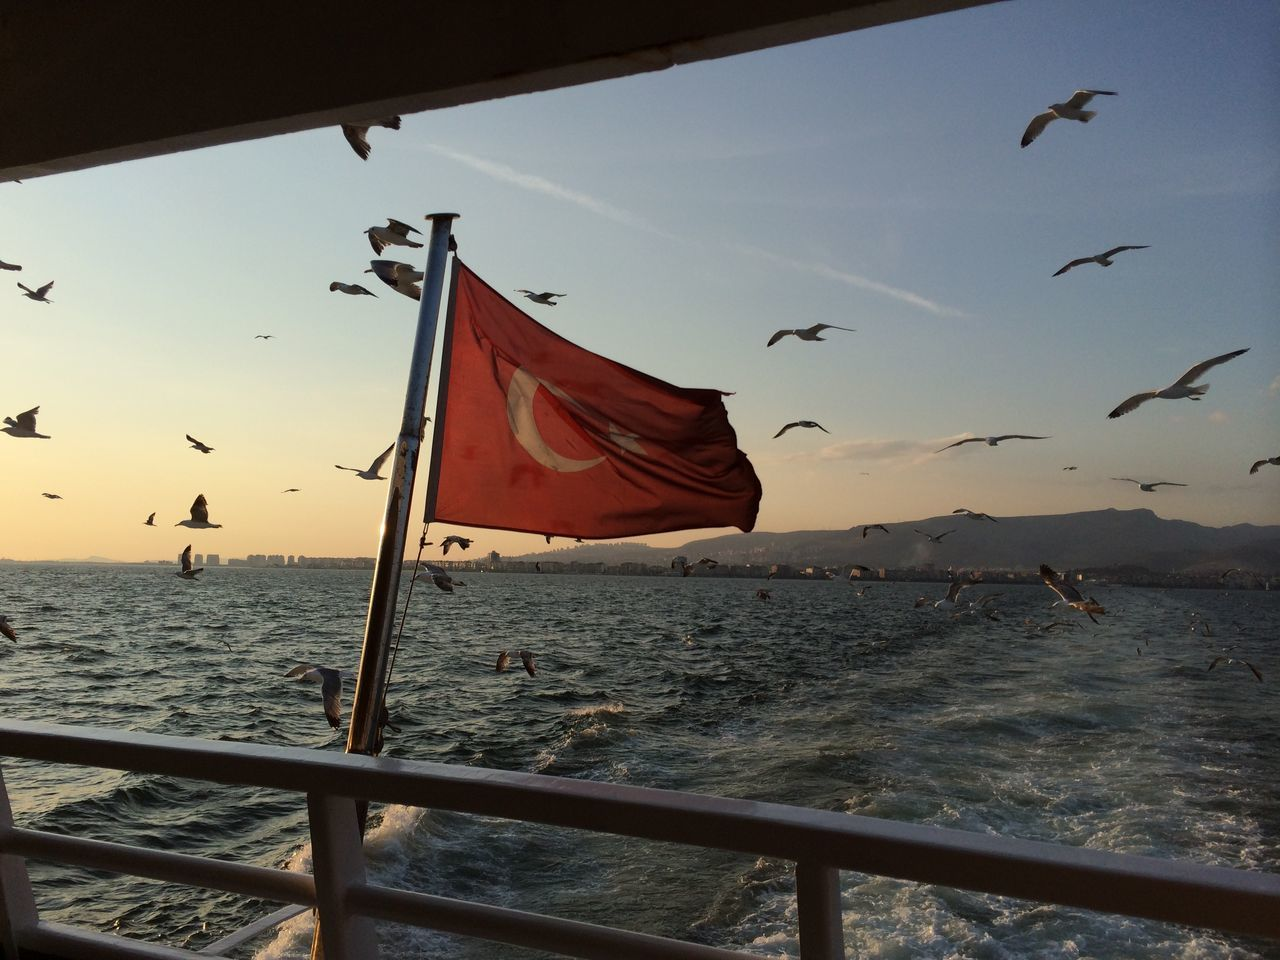 Turkish flag on boat in sea during sunset